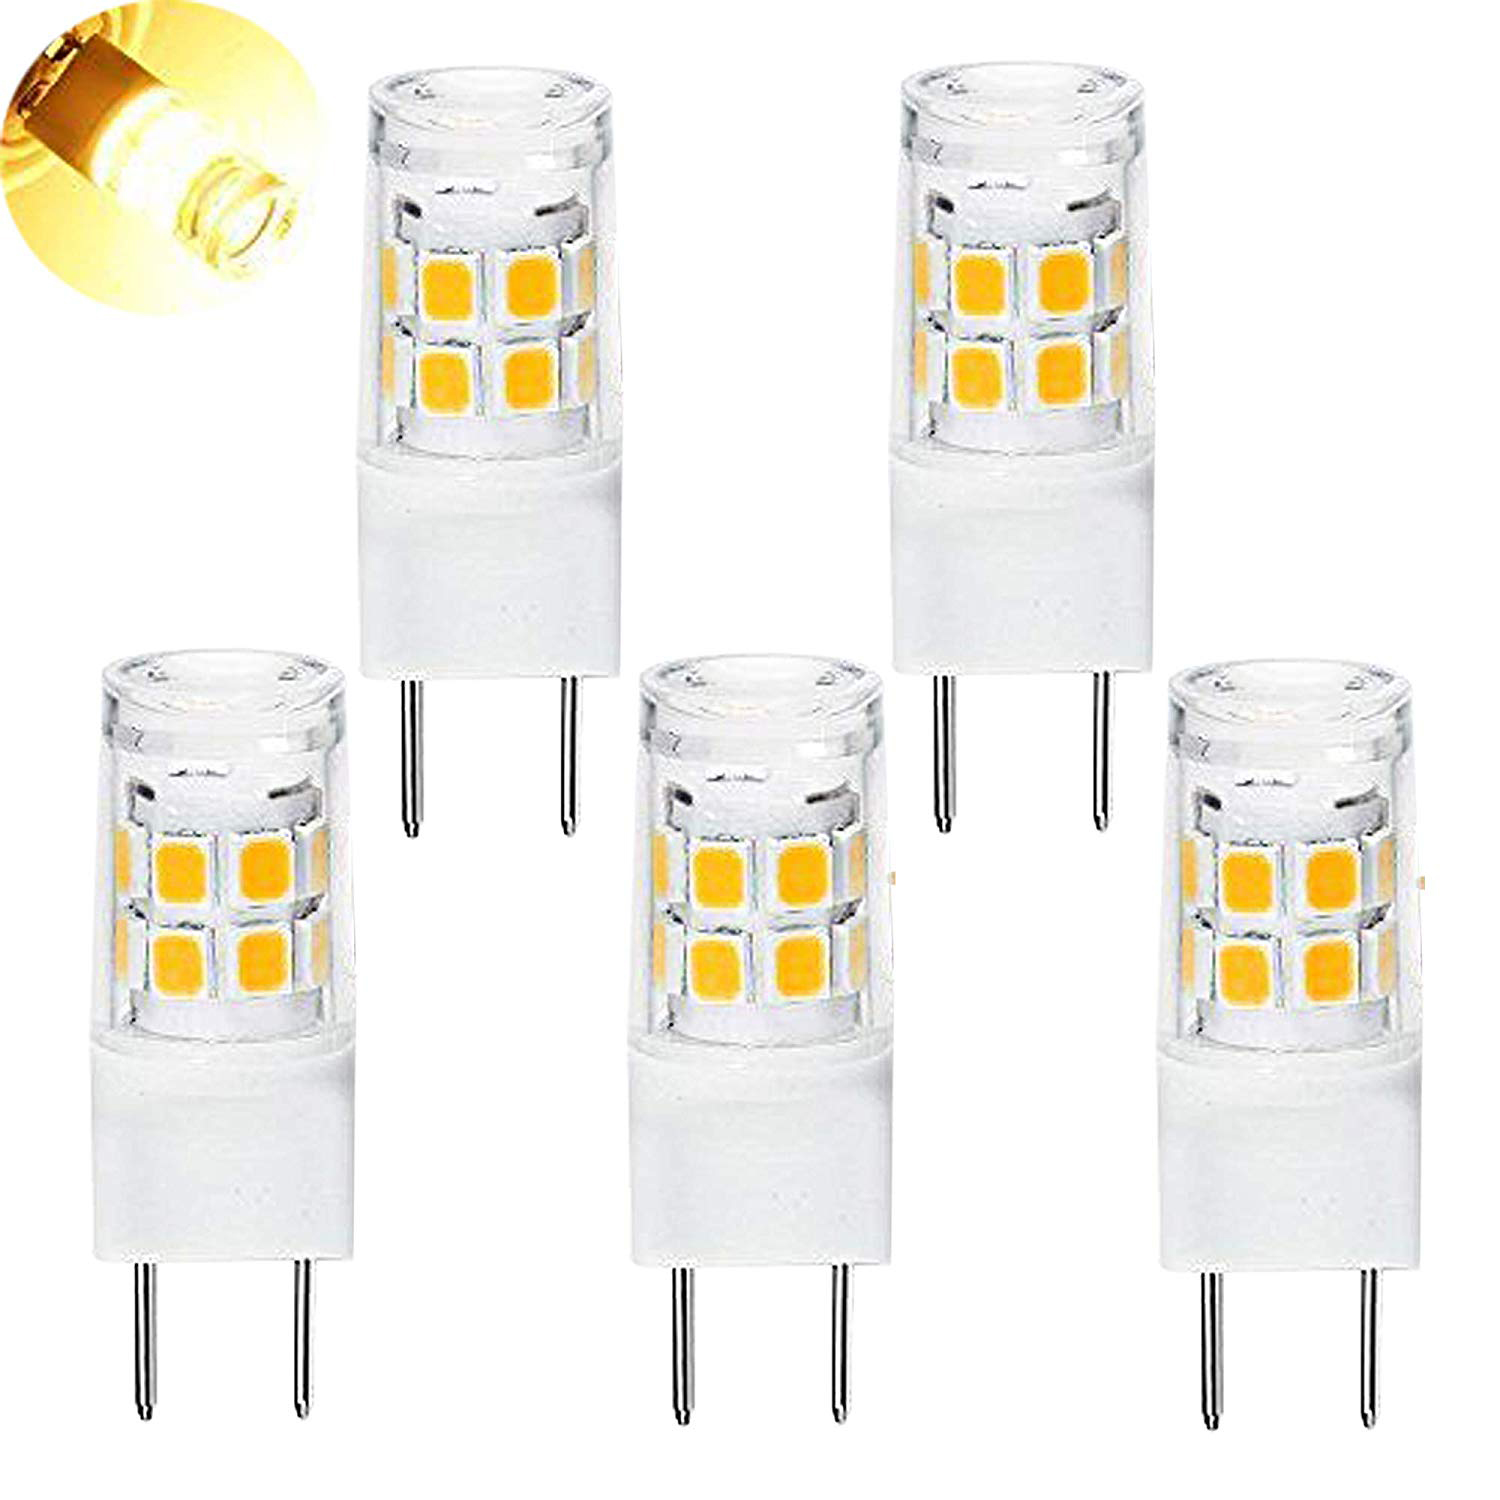 LED G8 Light Bulb, G8 GY8.6 Bi-pin Base LED, Not Dimmable T4 G8 Base Bi-pin Xenon JCD Type LED 120V (5-Pack) (G8 3W) все цены